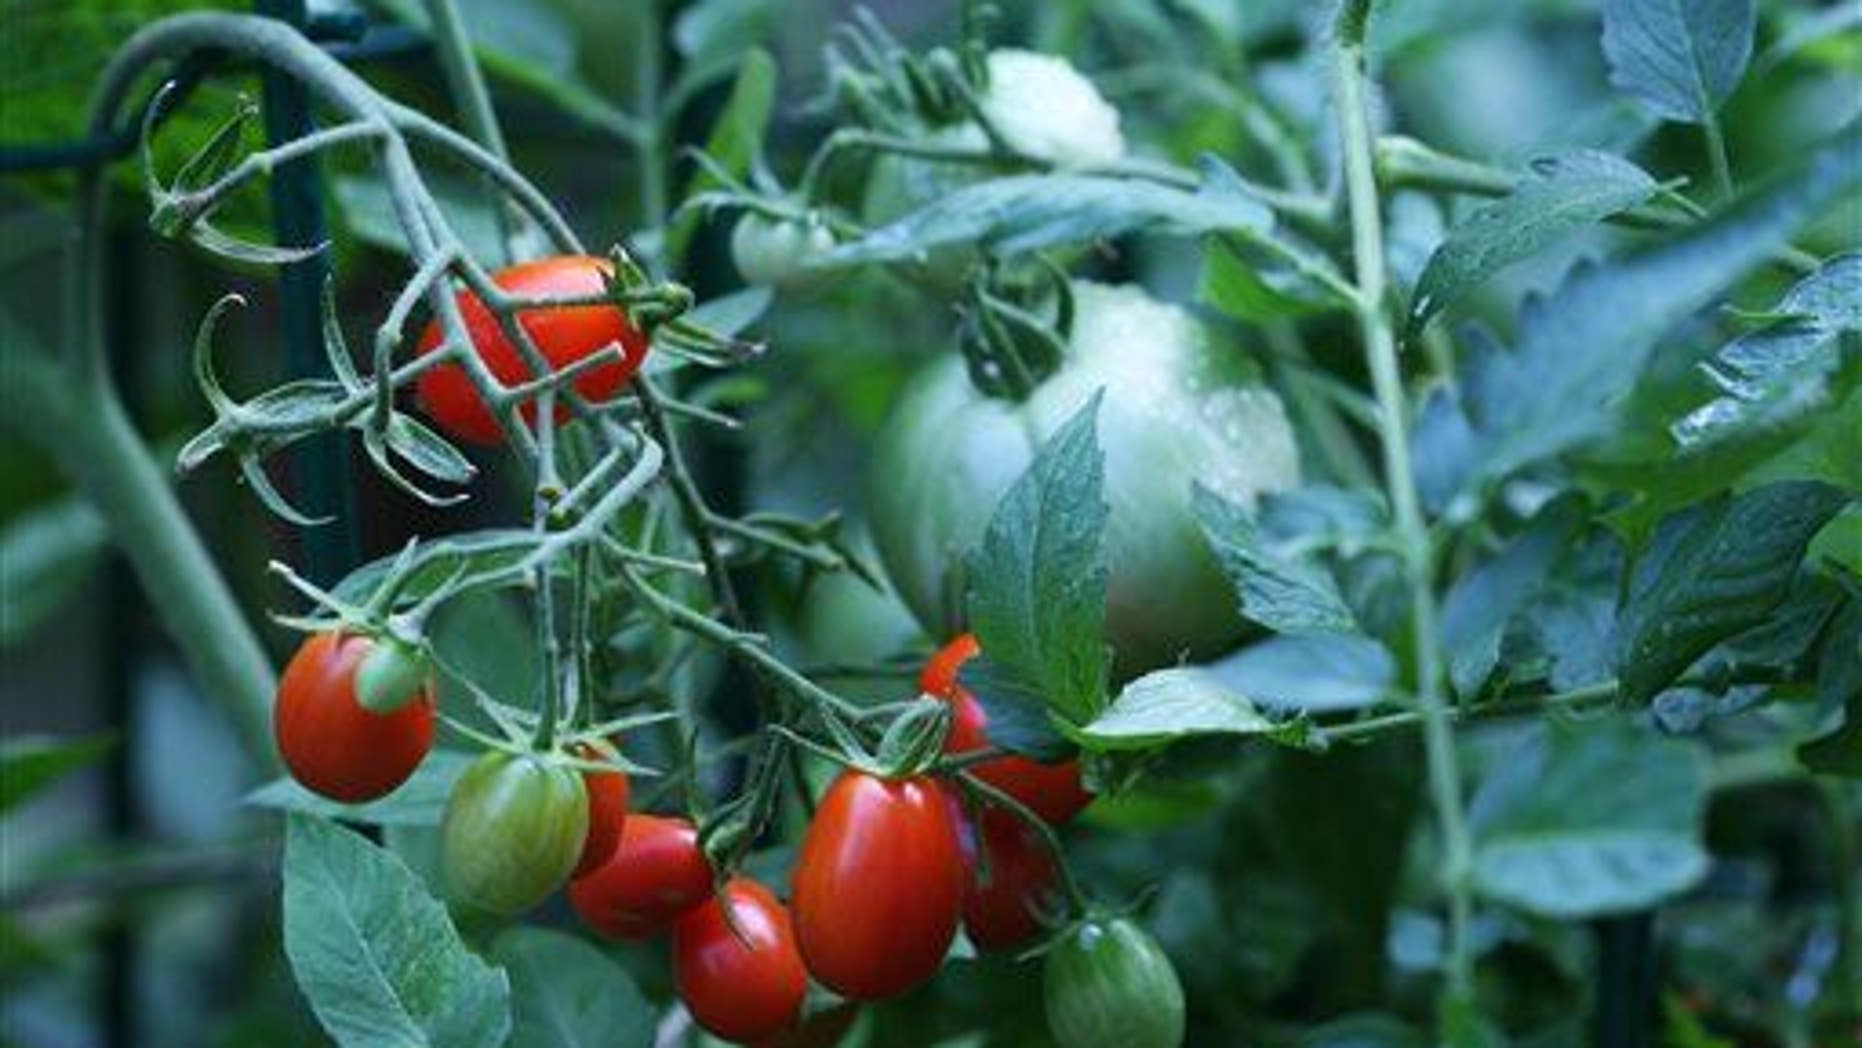 Cherry tomatoes are shown ... do potatoes lurk below?